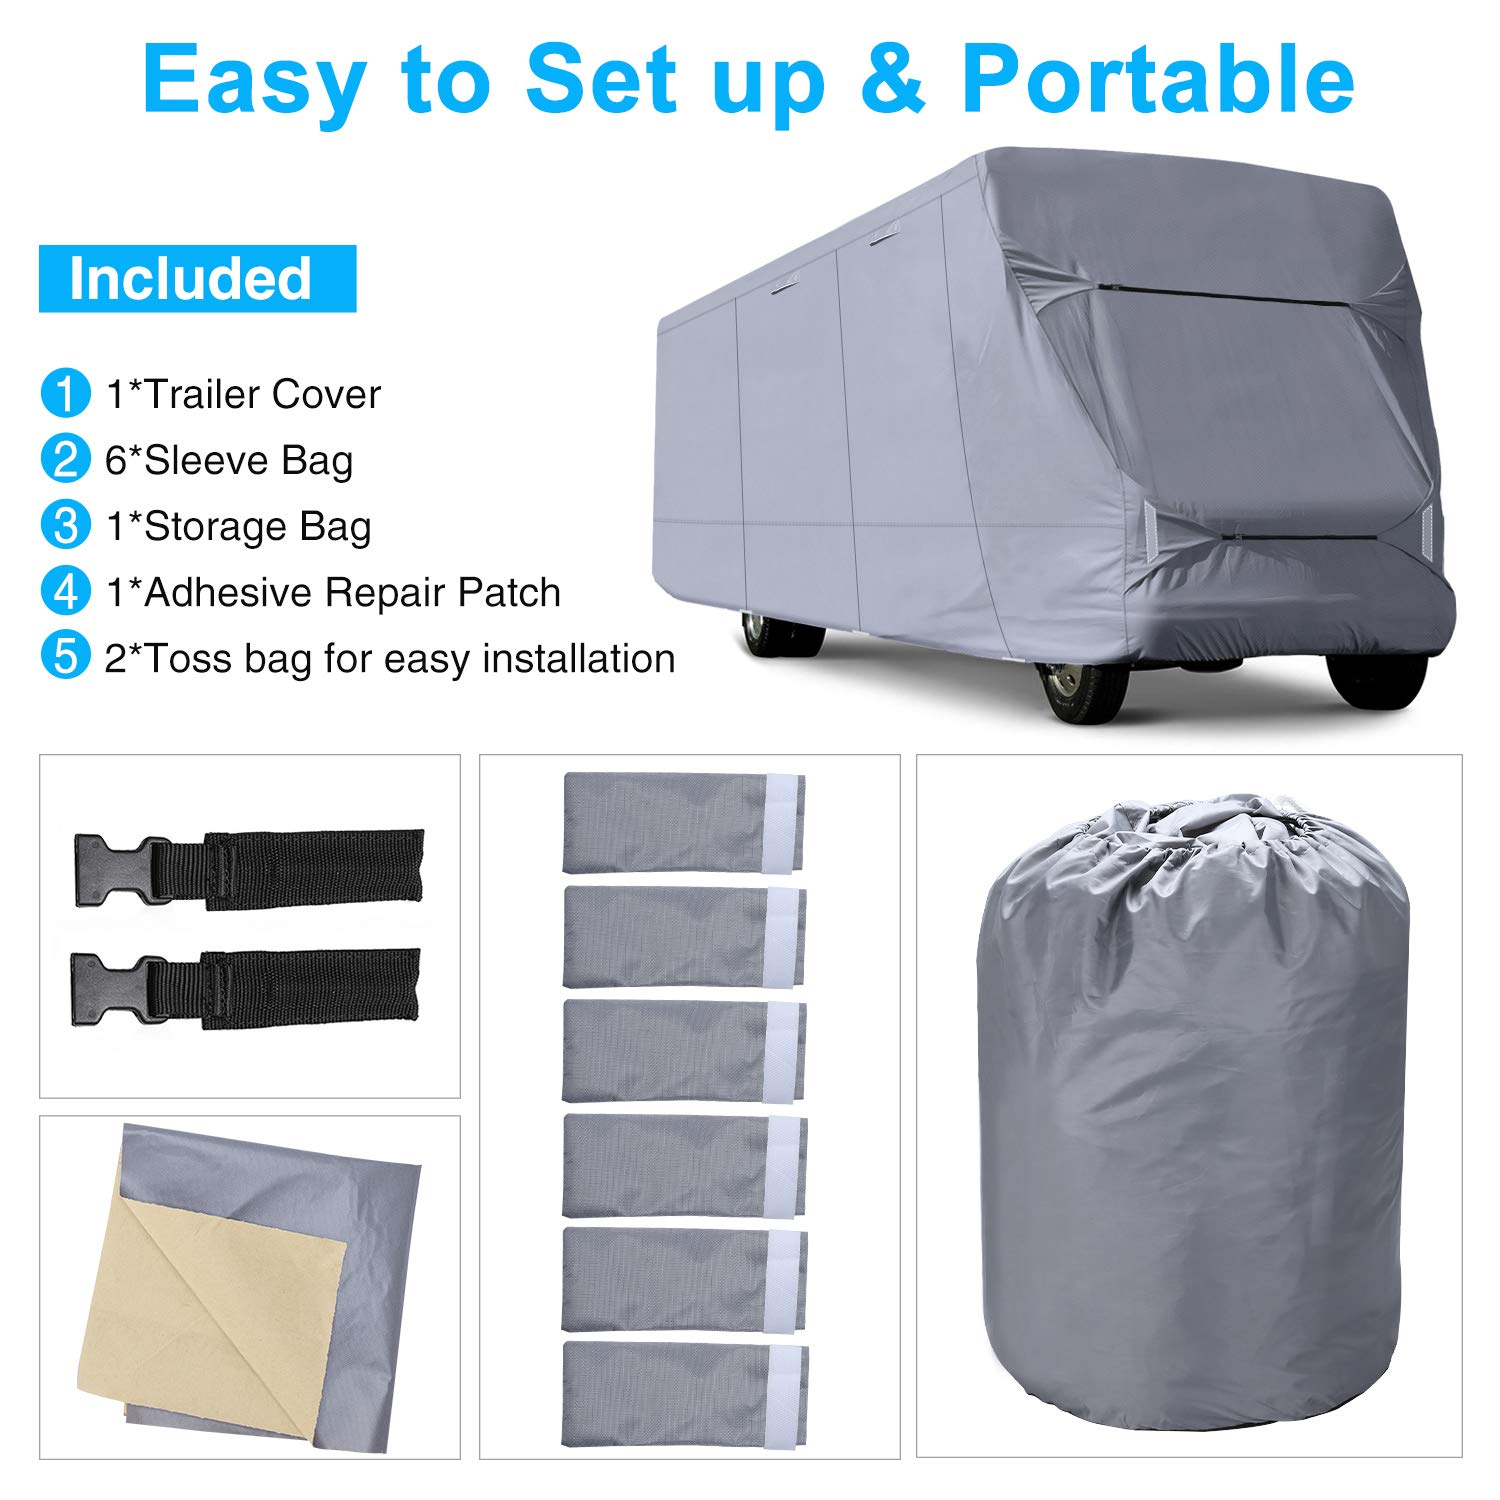 More Waterproof Anti-UV Ripstop Camper Cover Fits 23-26 Trailer Camper With Adhesive Repair Patch RVMasking Oxford Class C RV Cover